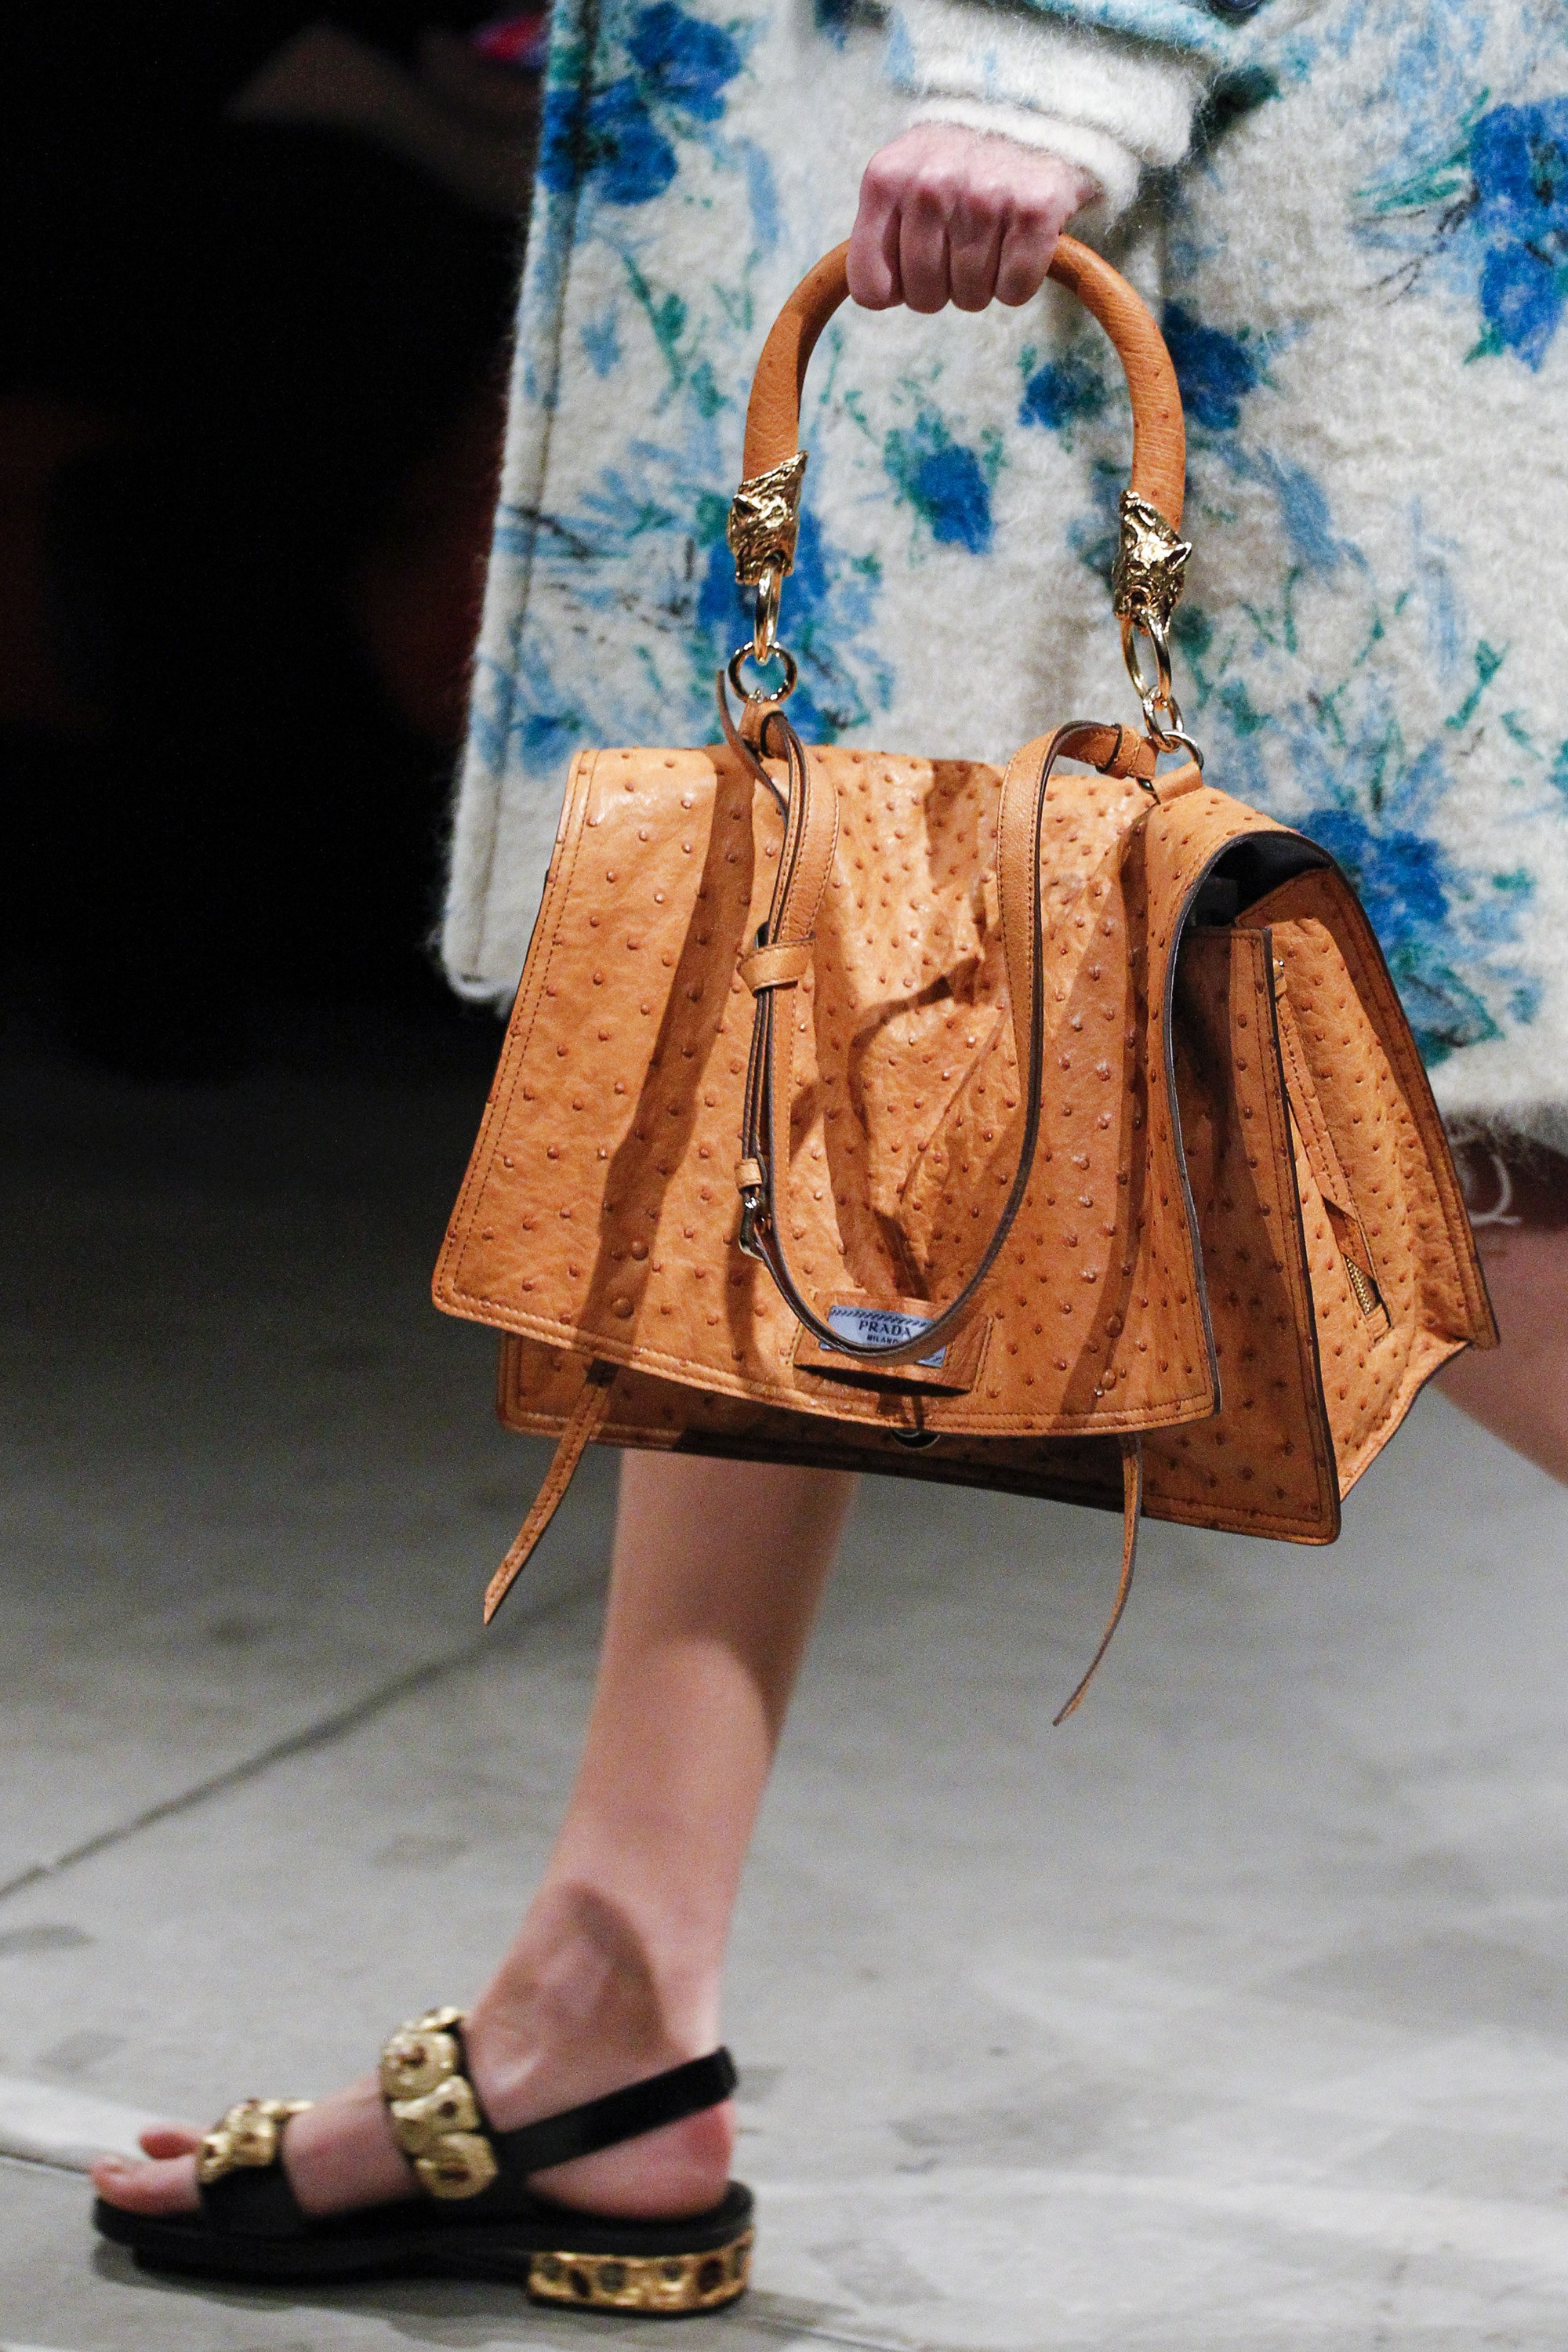 Prada Fall Winter 2017 Runway Bag Collection Spotted Fashion